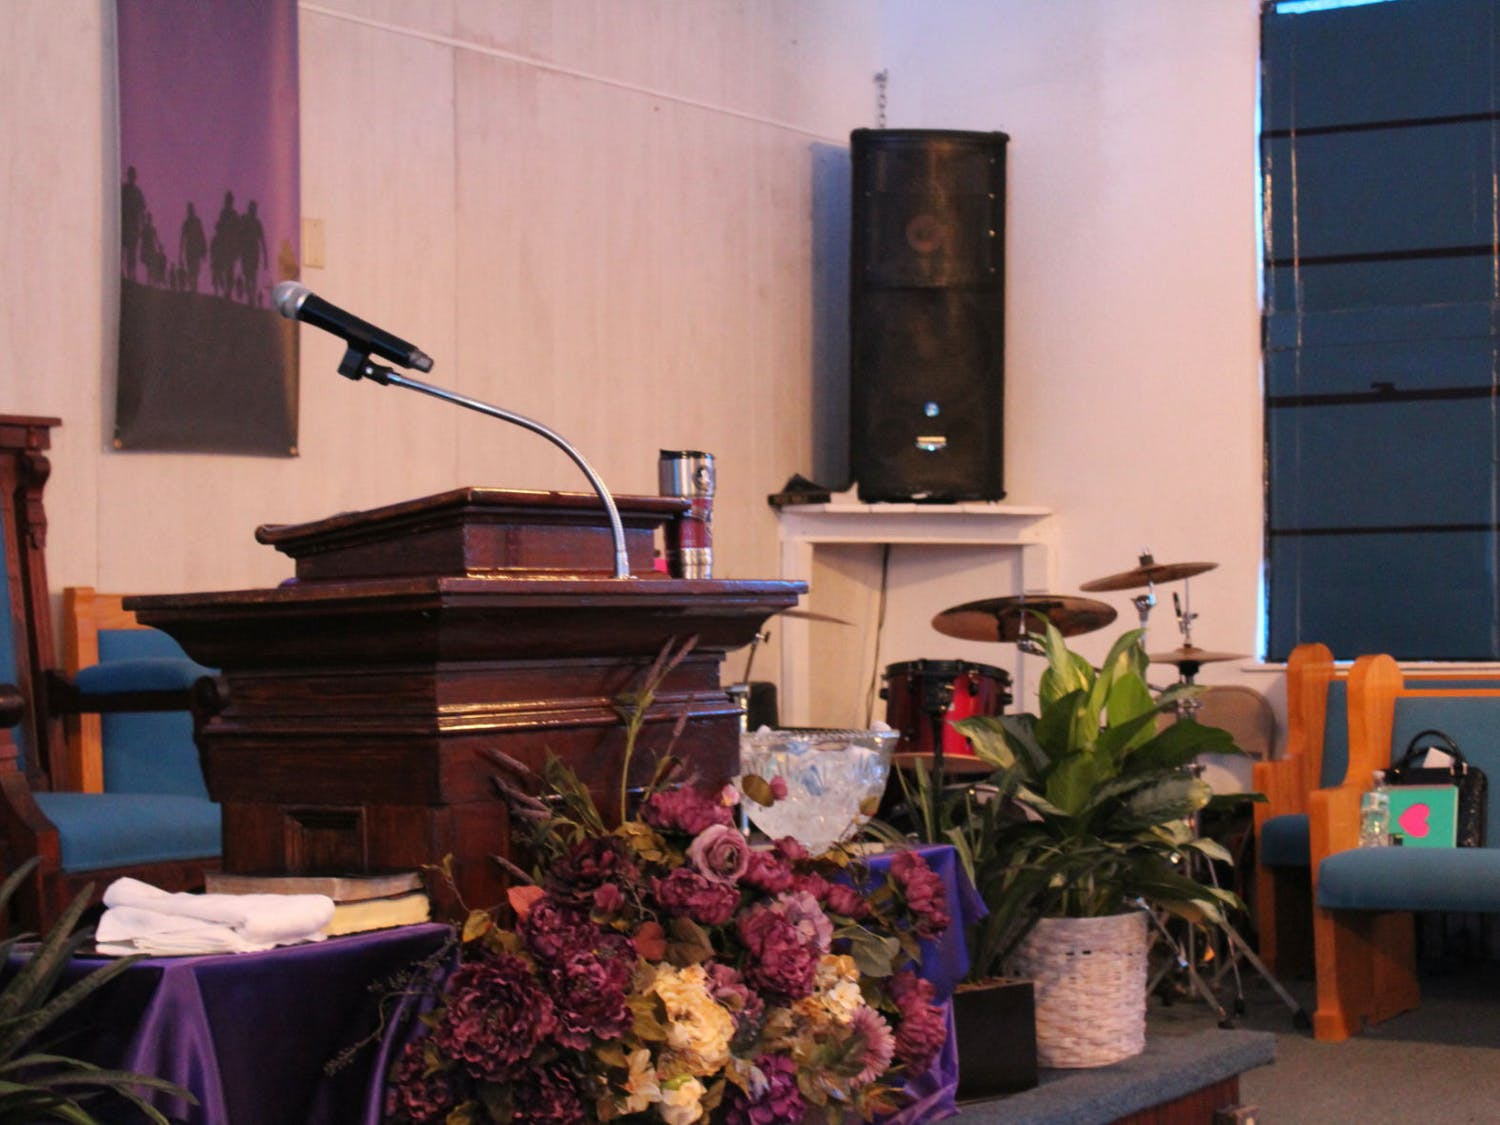 From this angle inside the New Beginning Christian Worship Center, the pulpit is seen in the foreground with the drums Sean used to play in the background. Sometimes during service, Chris said he can't help but glance over and remember how much his son loved those drums.